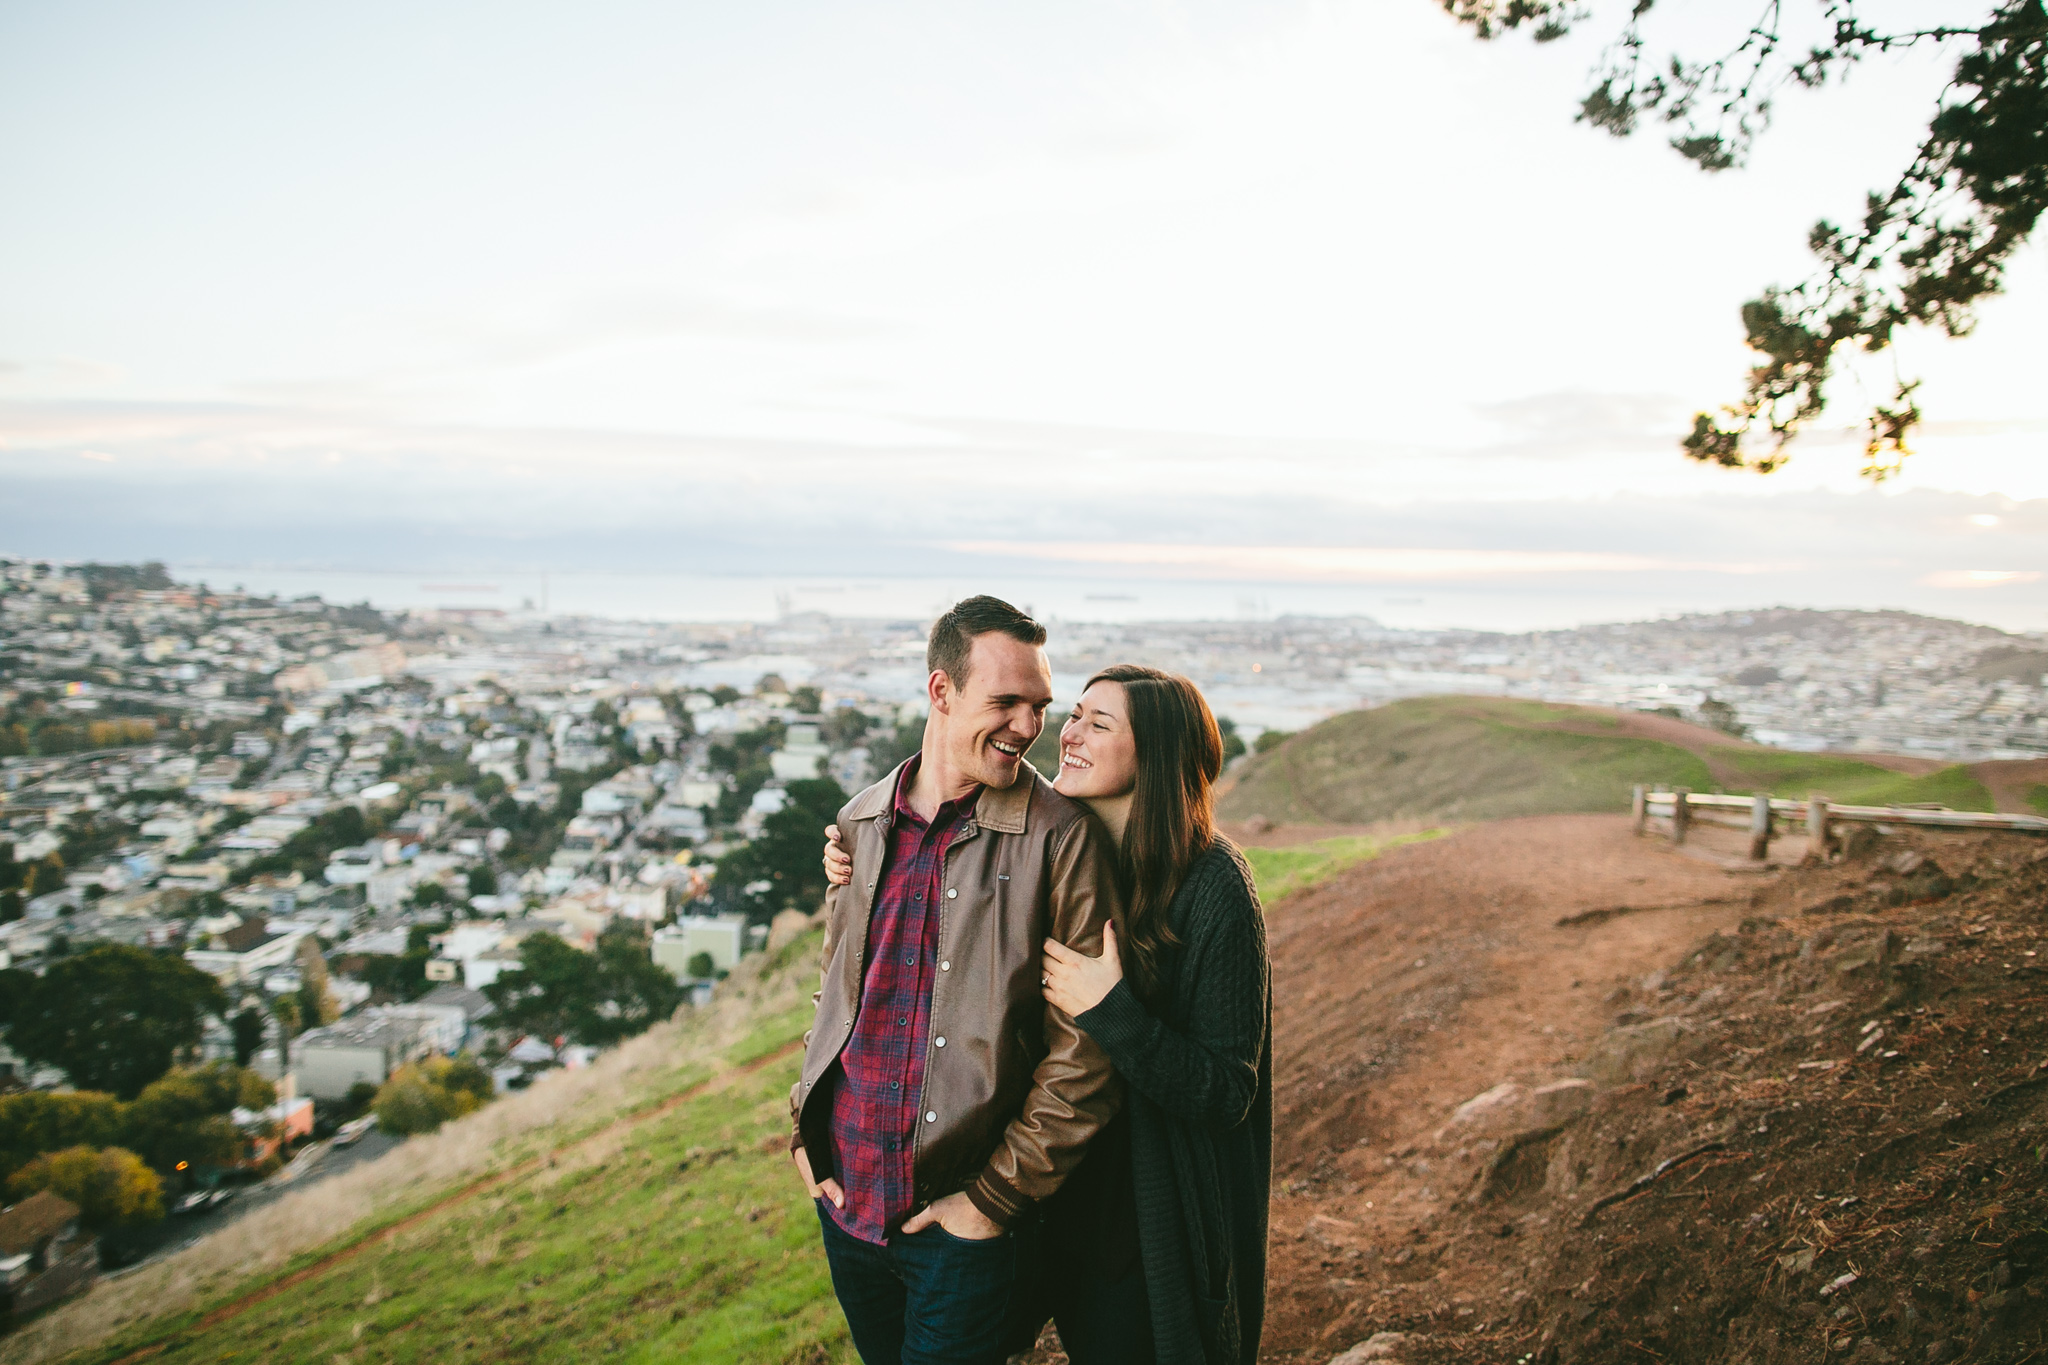 Sunee+Adam-Proposal-KellyBoitanoPhotography_WEB20151229_0023